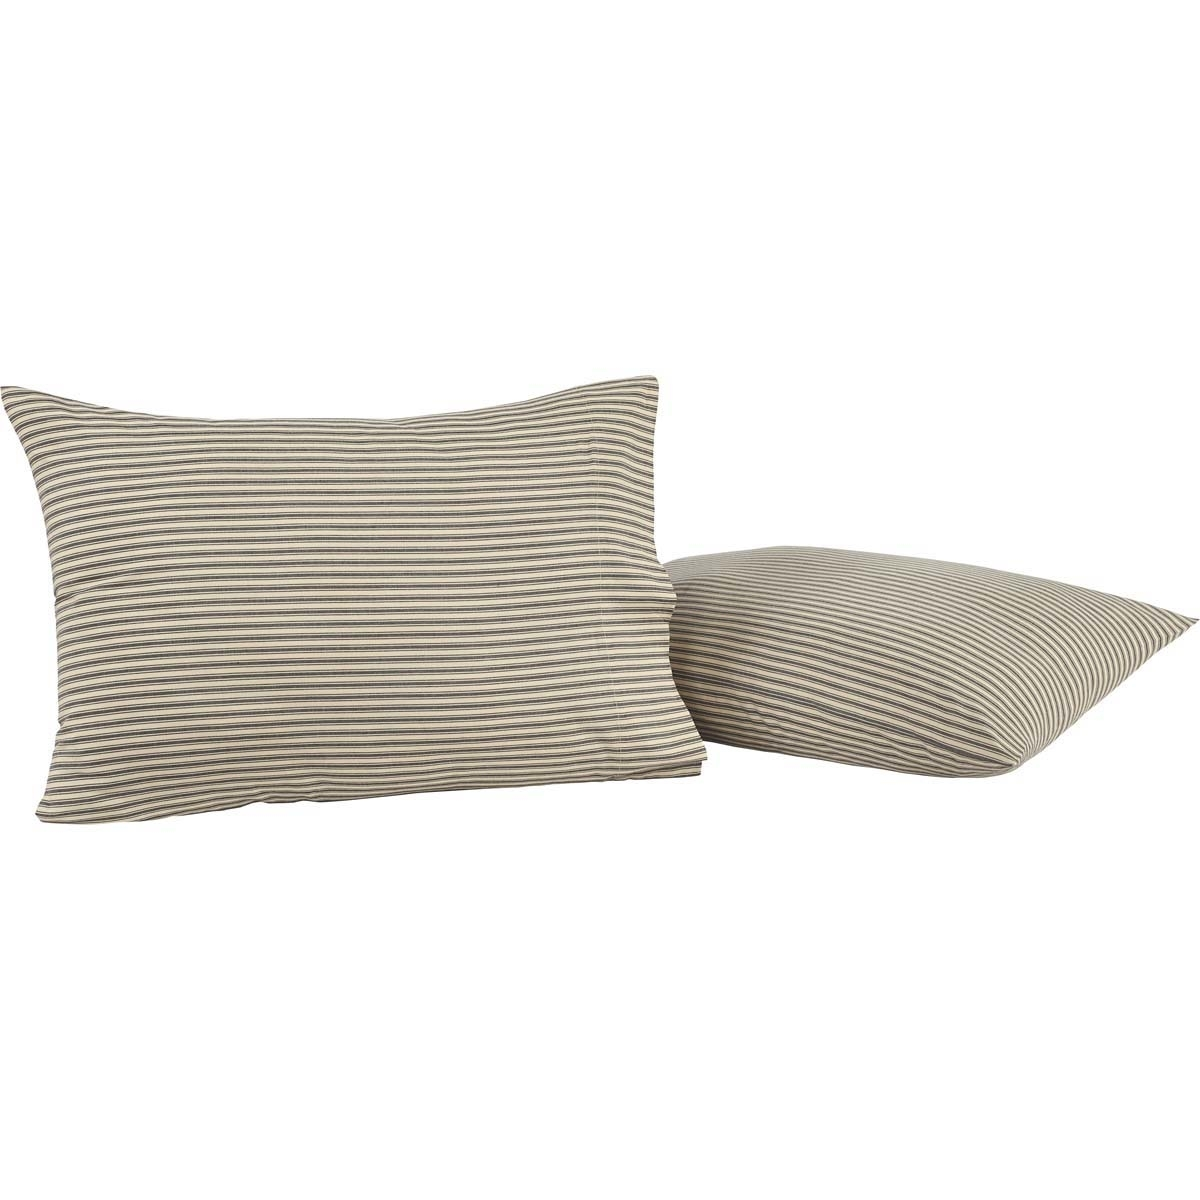 Farmhouse Bedding Kendra Stripe Pillow Case Set Of 2